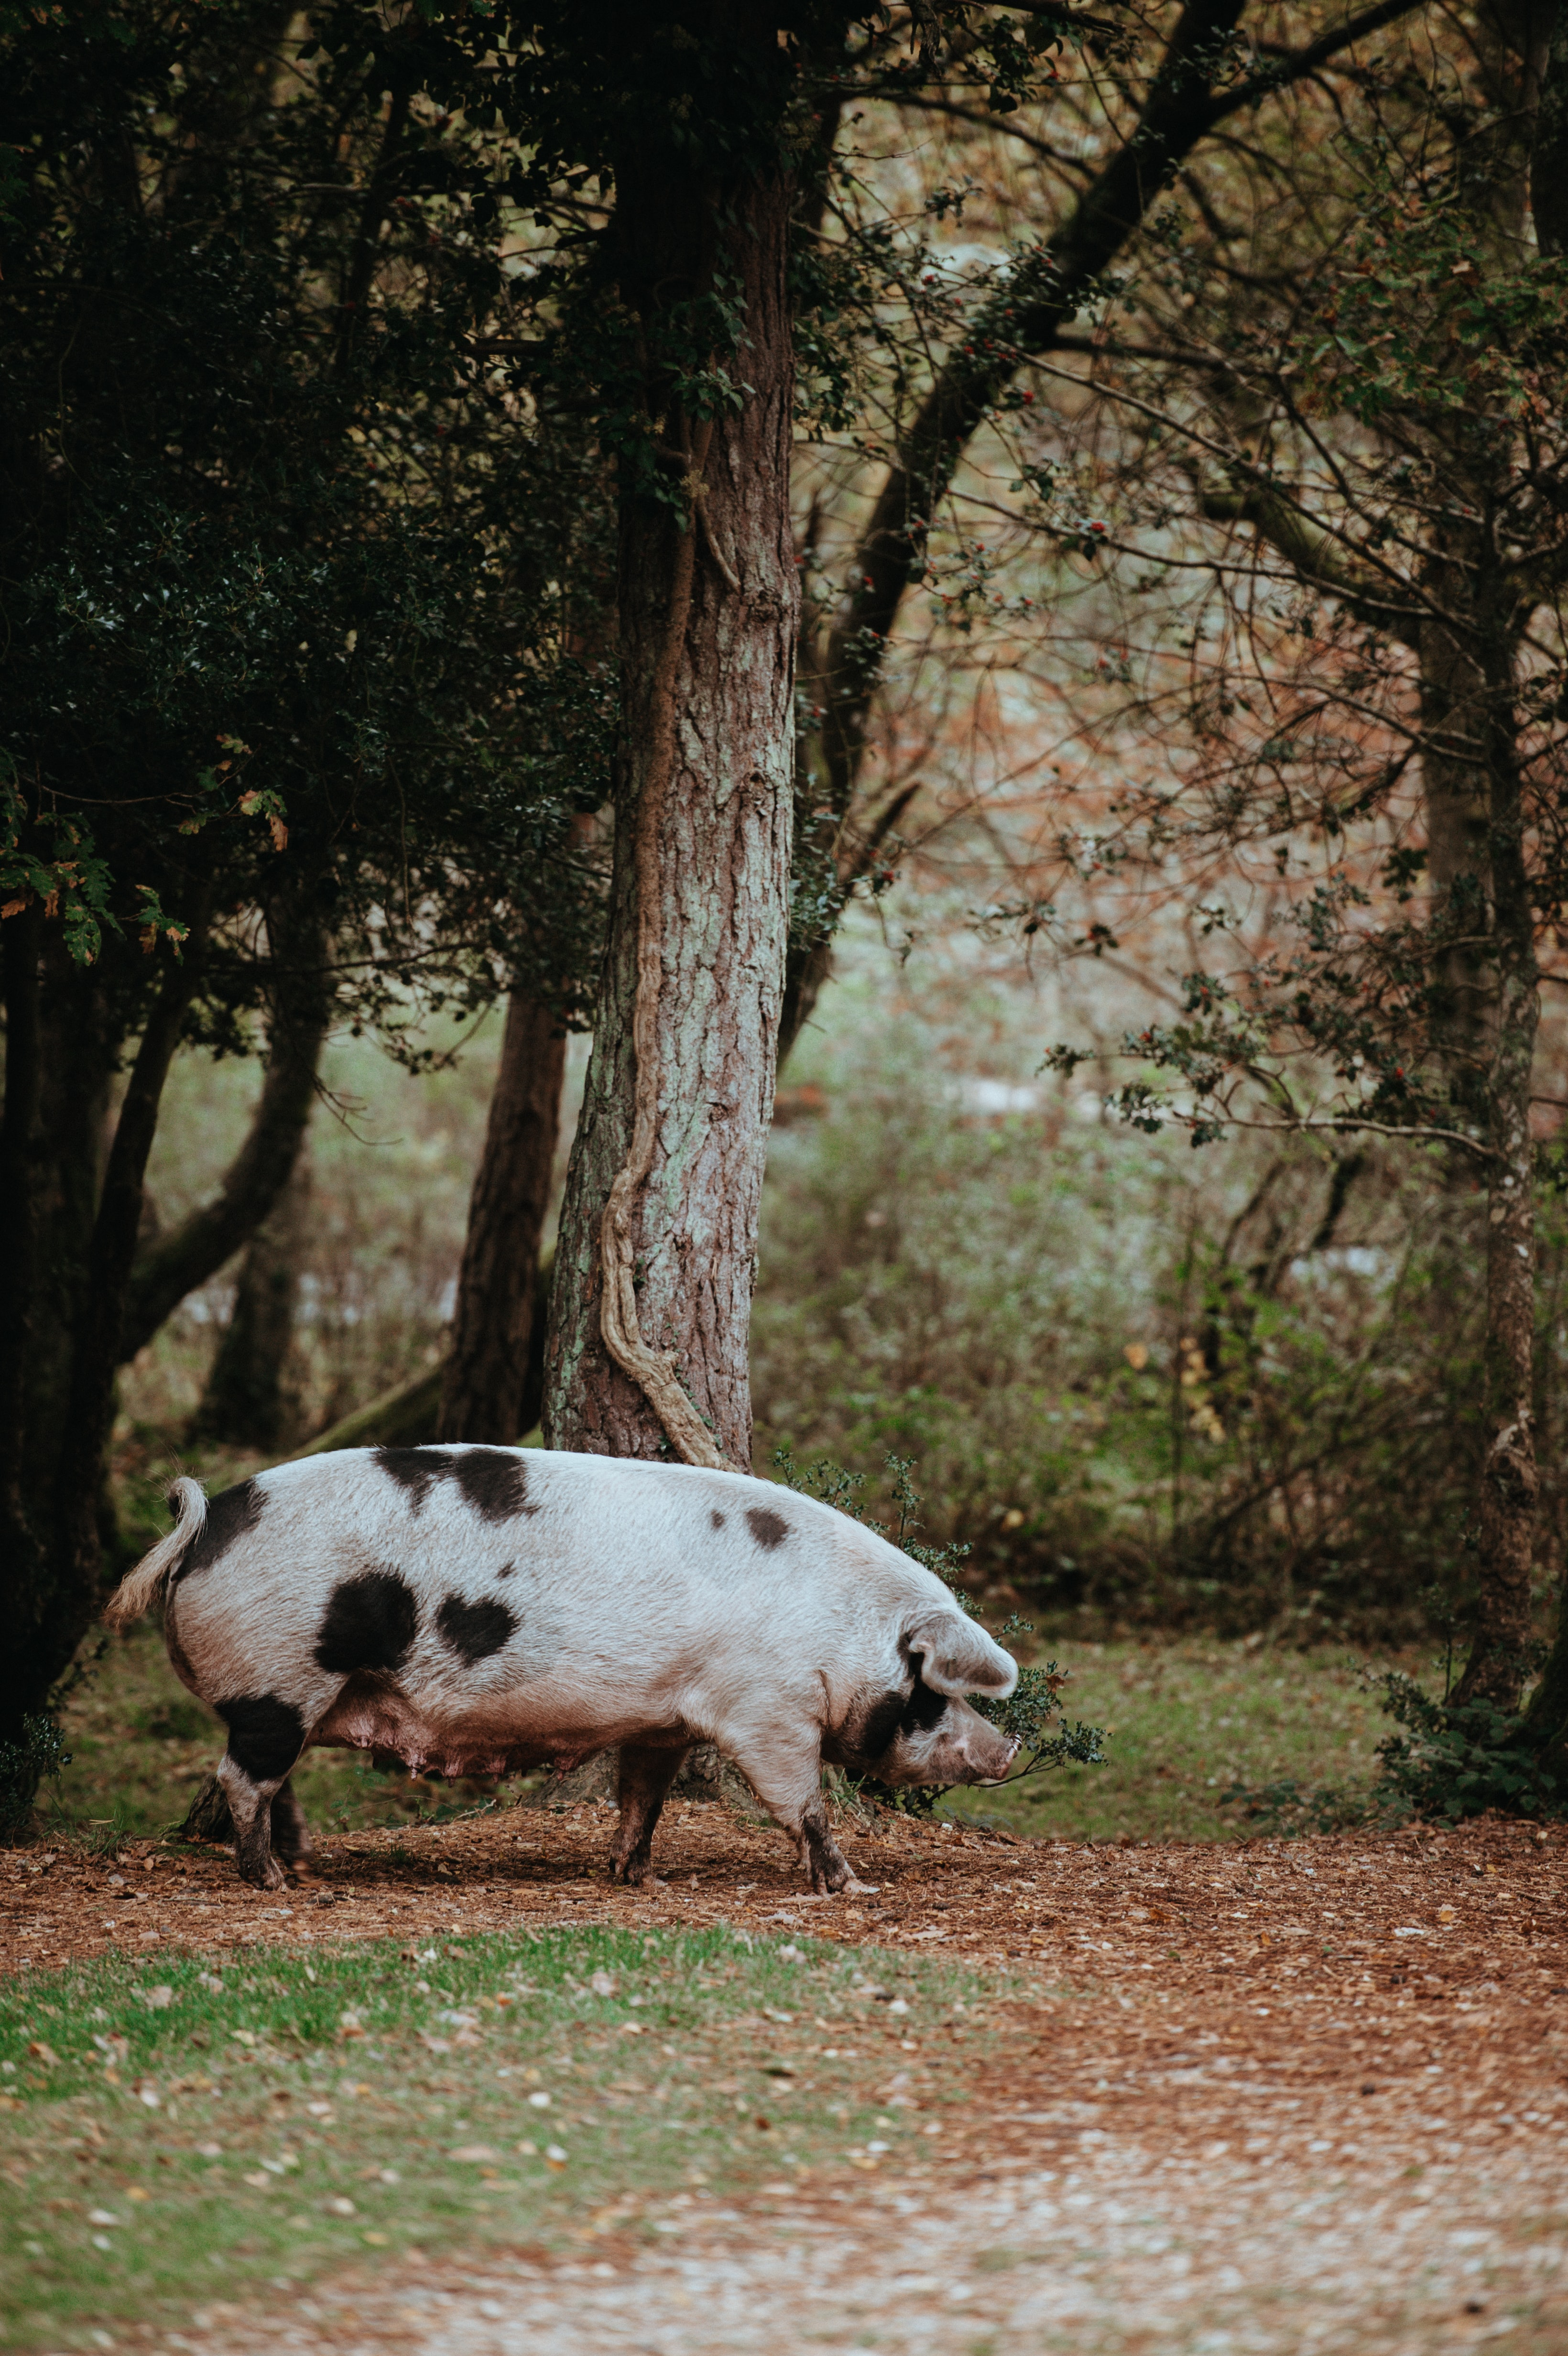 piglet in forest